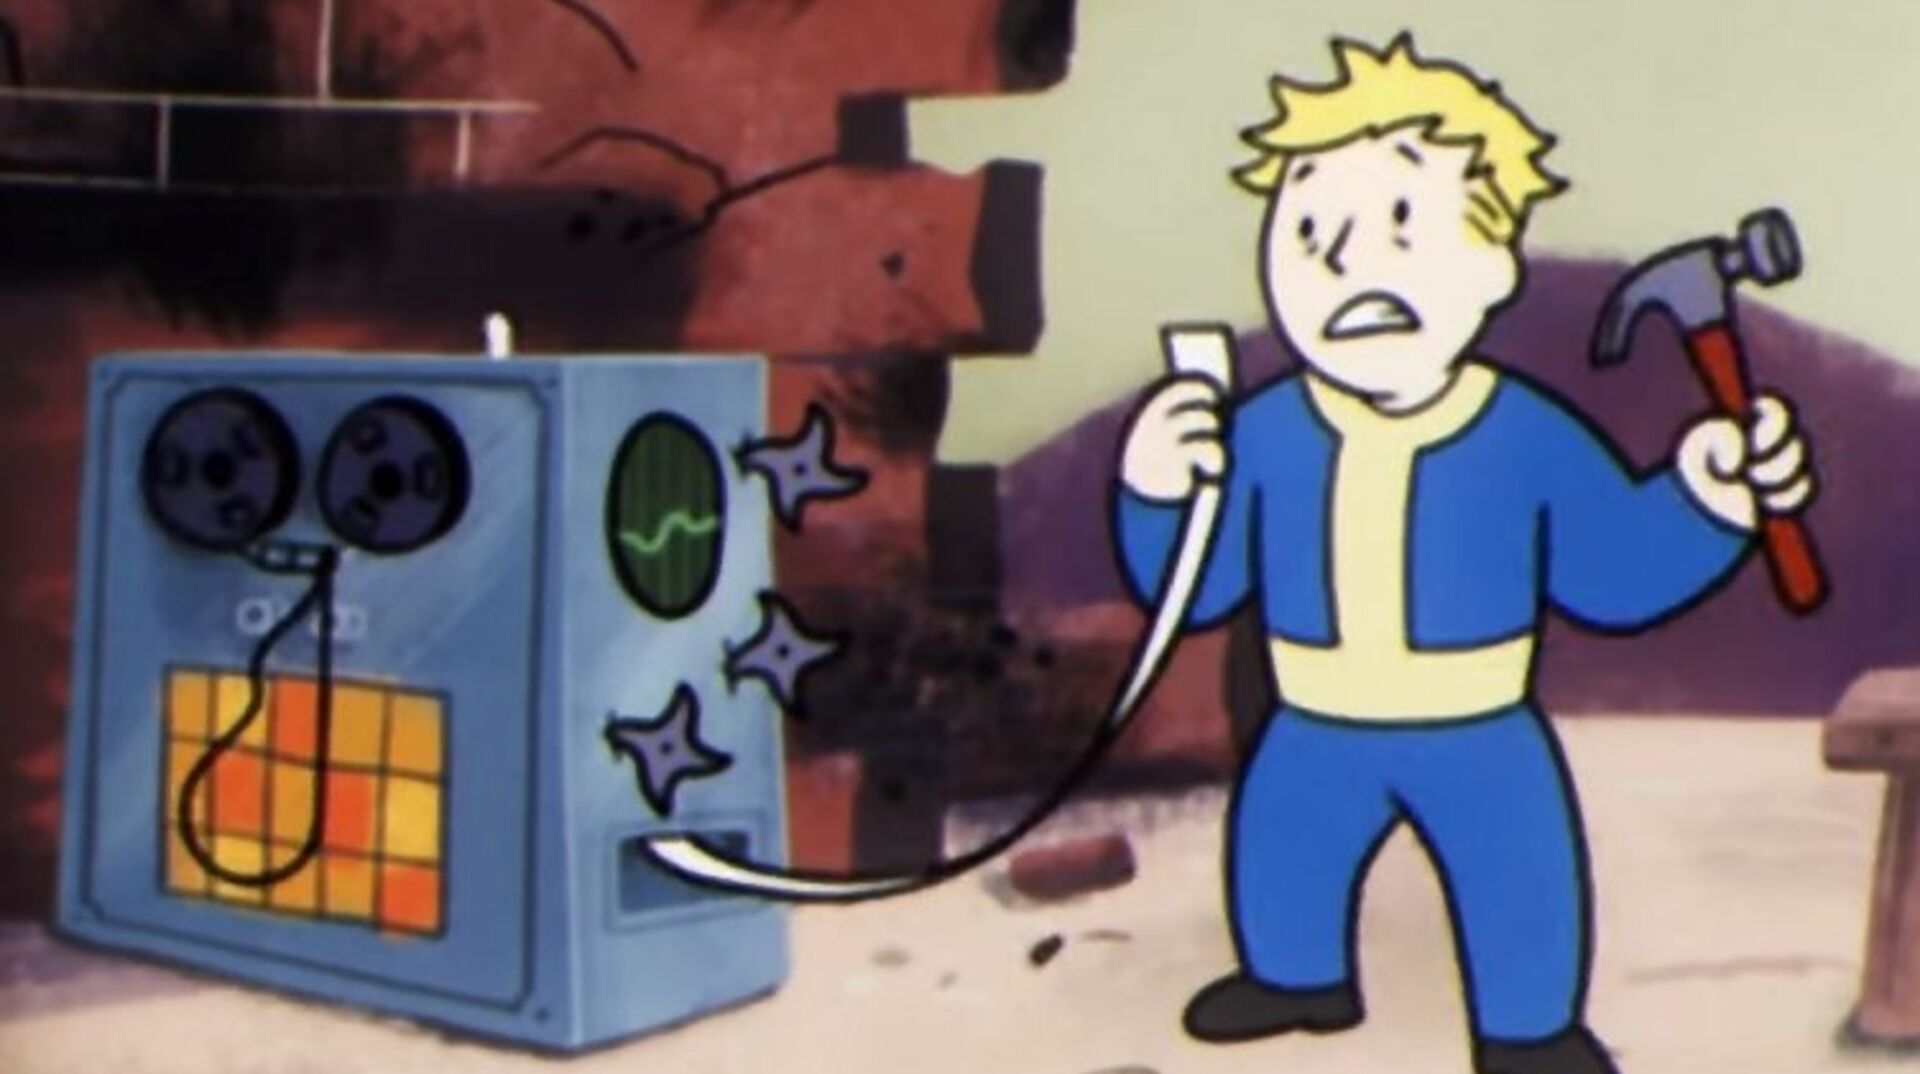 Fallout 76 patch kills item duplication and makes bobby pins lighter